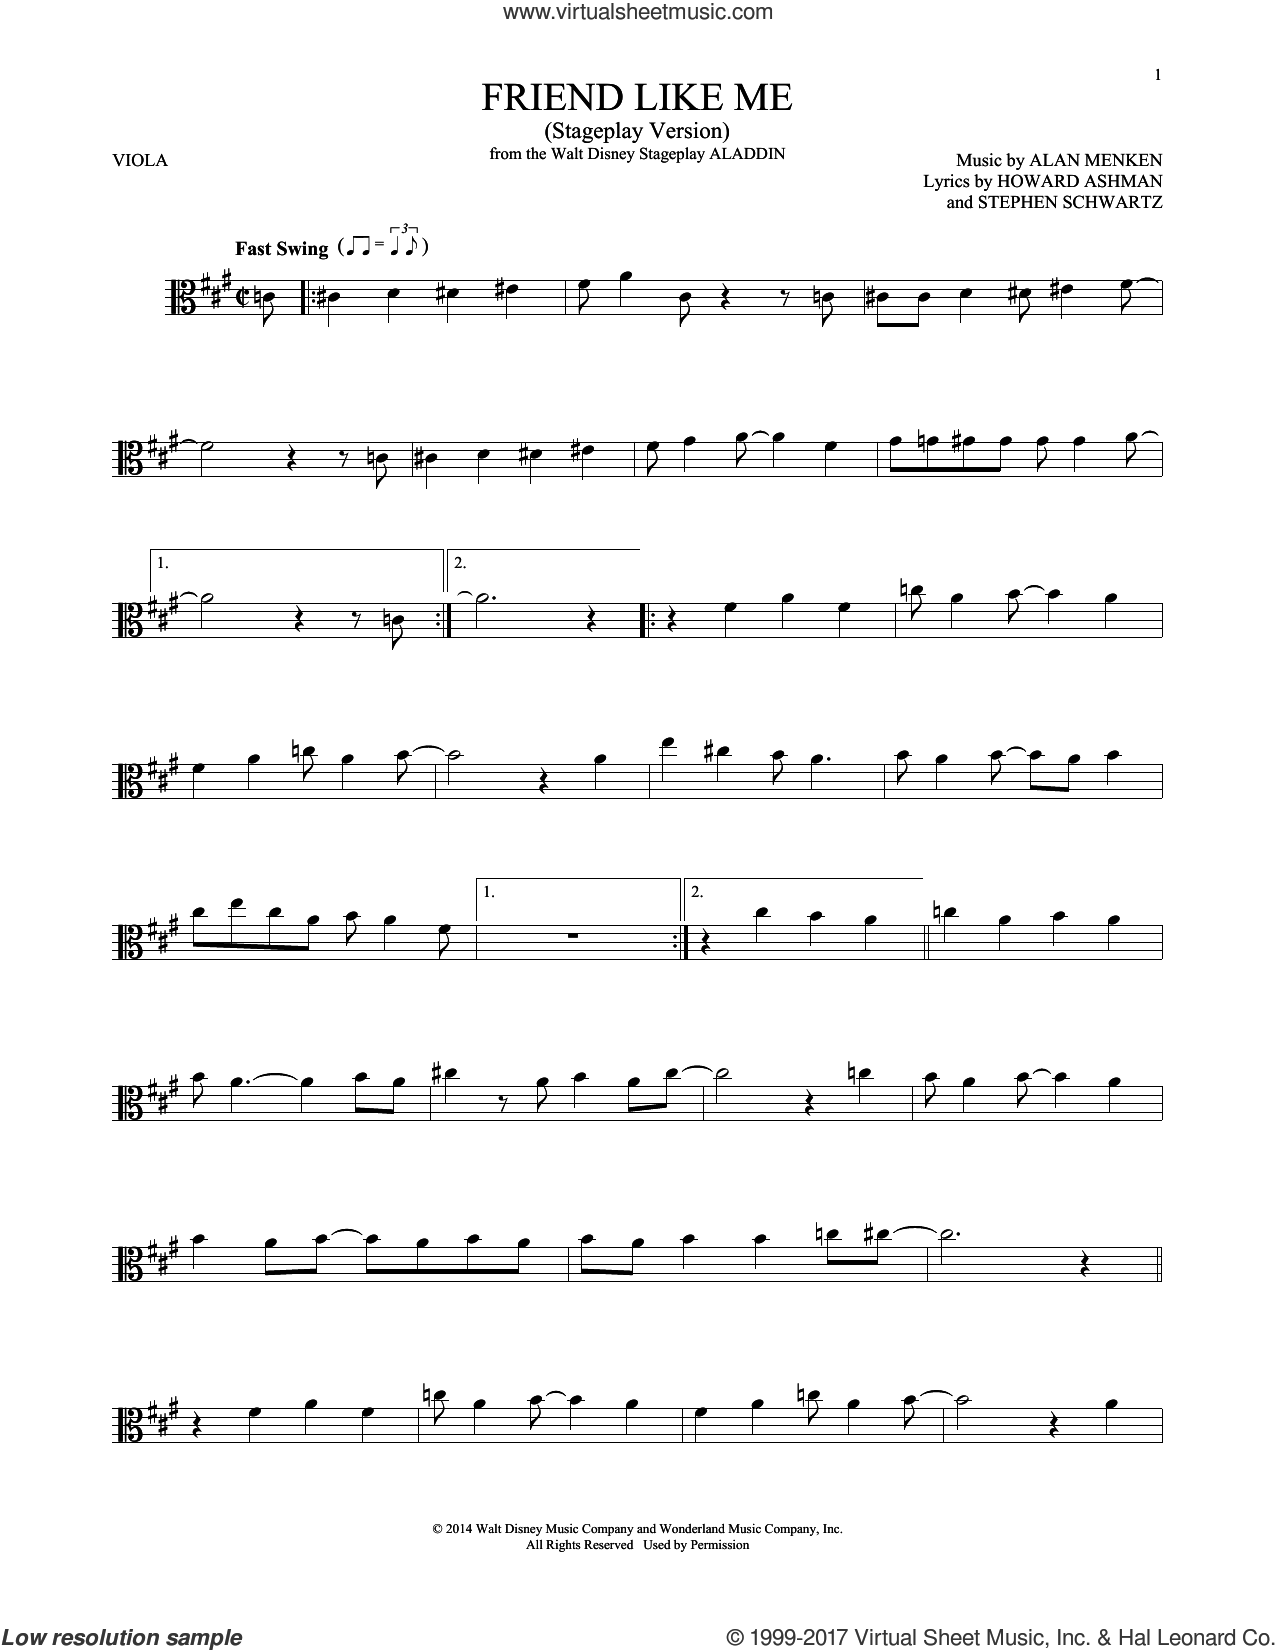 Friend Like Me (Stageplay Version) sheet music for viola solo by Alan Menken, Howard Ashman and Stephen Schwartz, intermediate skill level